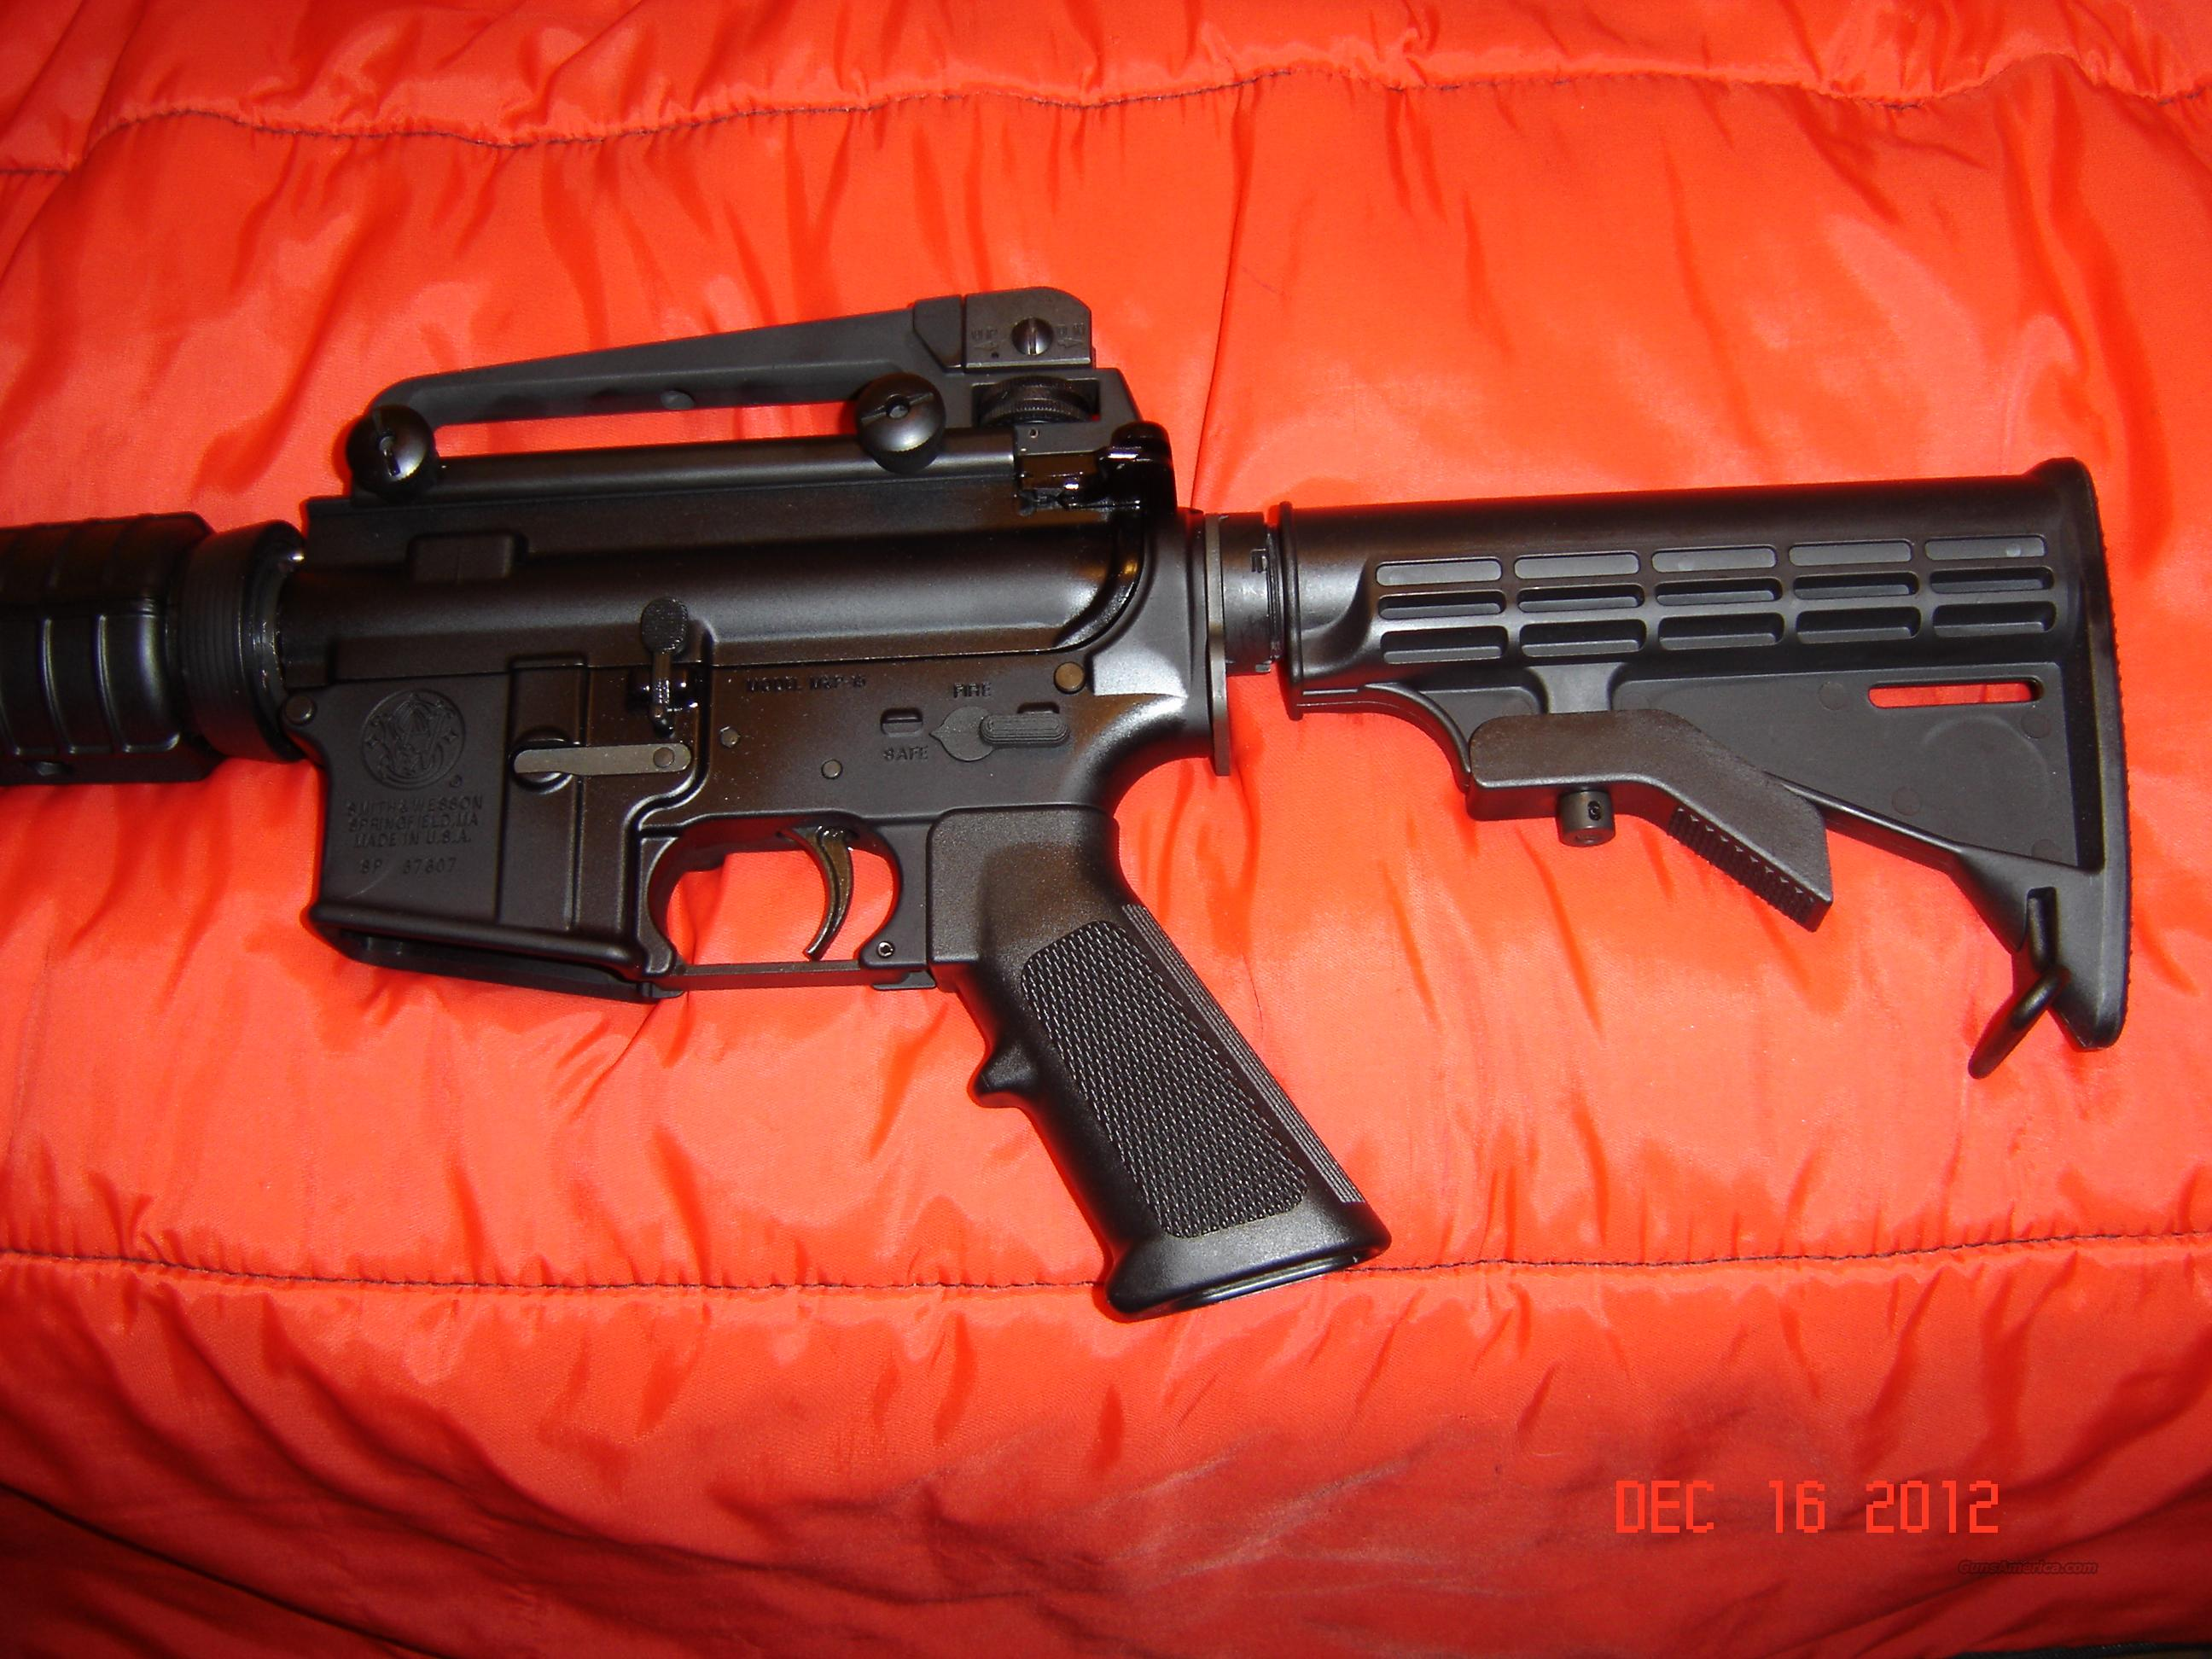 "Short Barrel AR, Semi Auto, Full Features 10.5""  Guns > Rifles > AR-15 Rifles - Small Manufacturers > Complete Rifle"